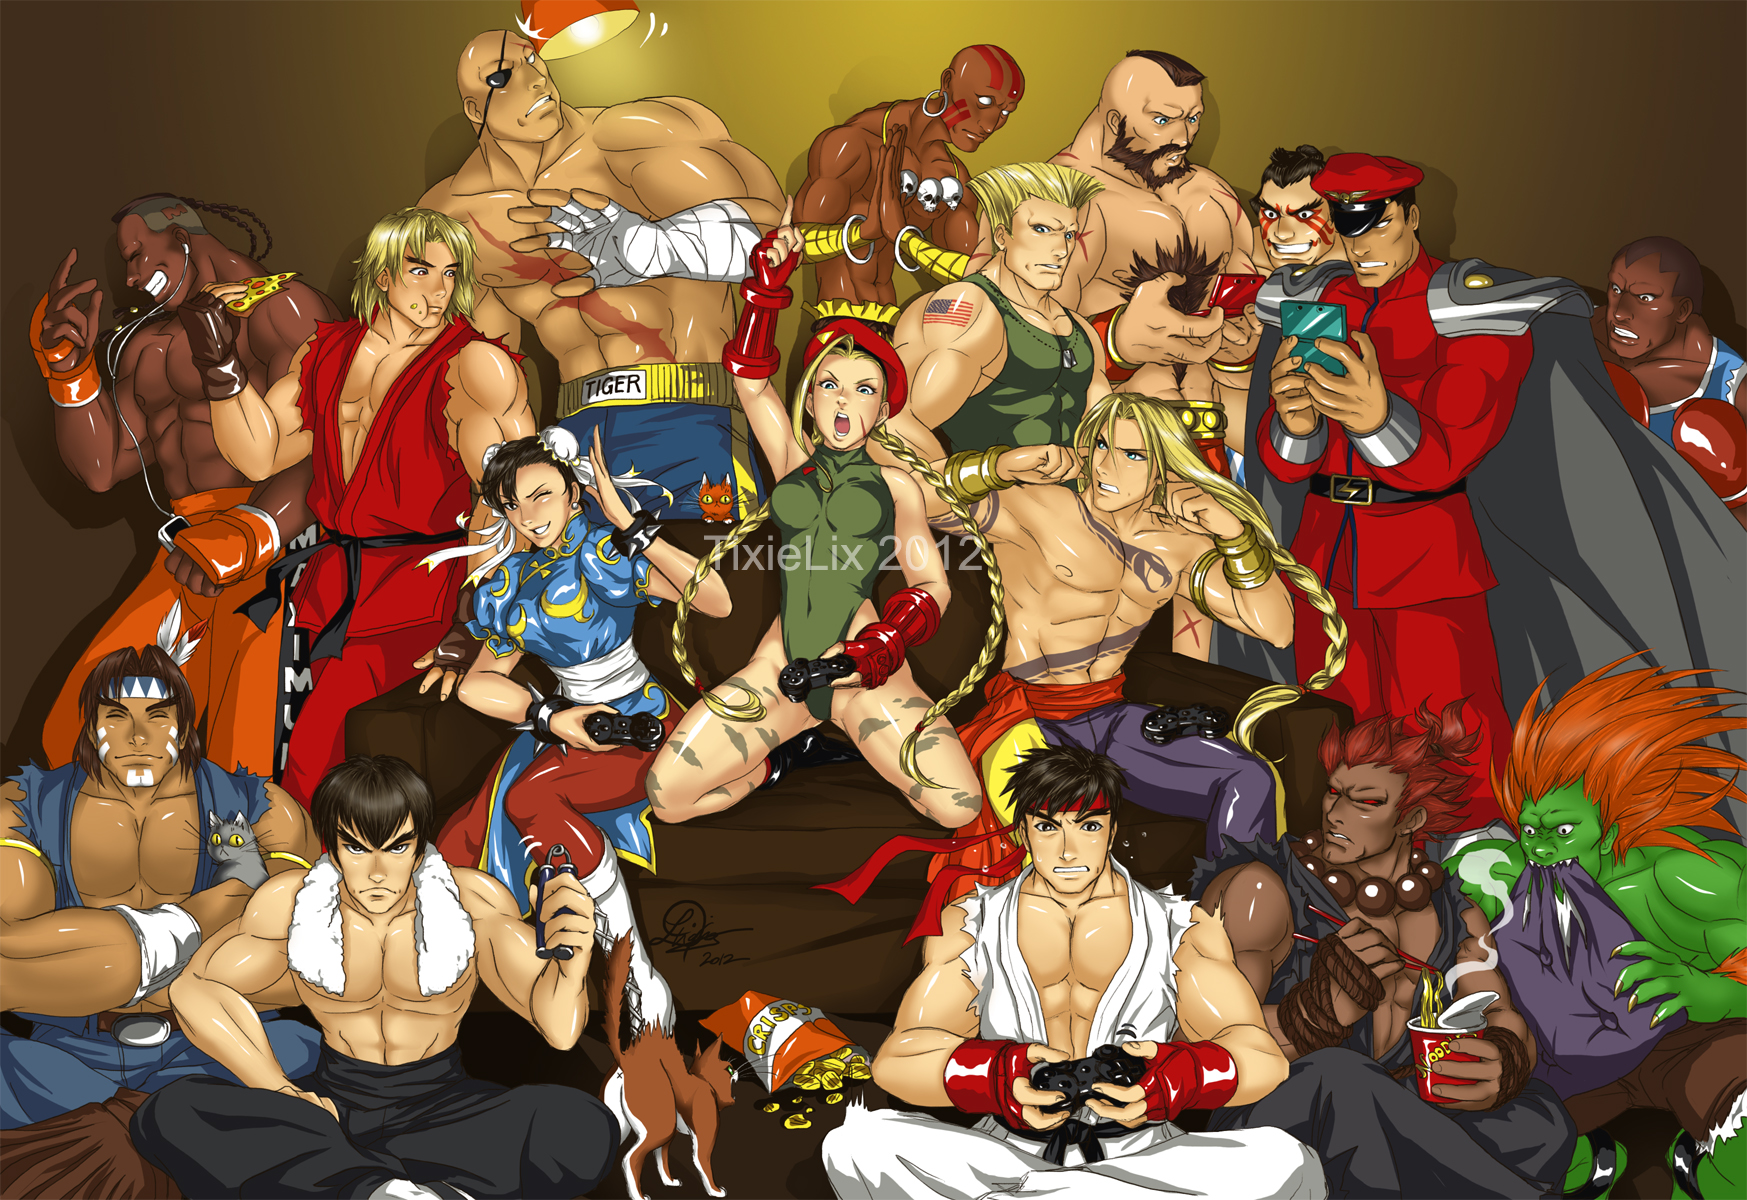 Street Fighters In Your Living Room By TixieLix